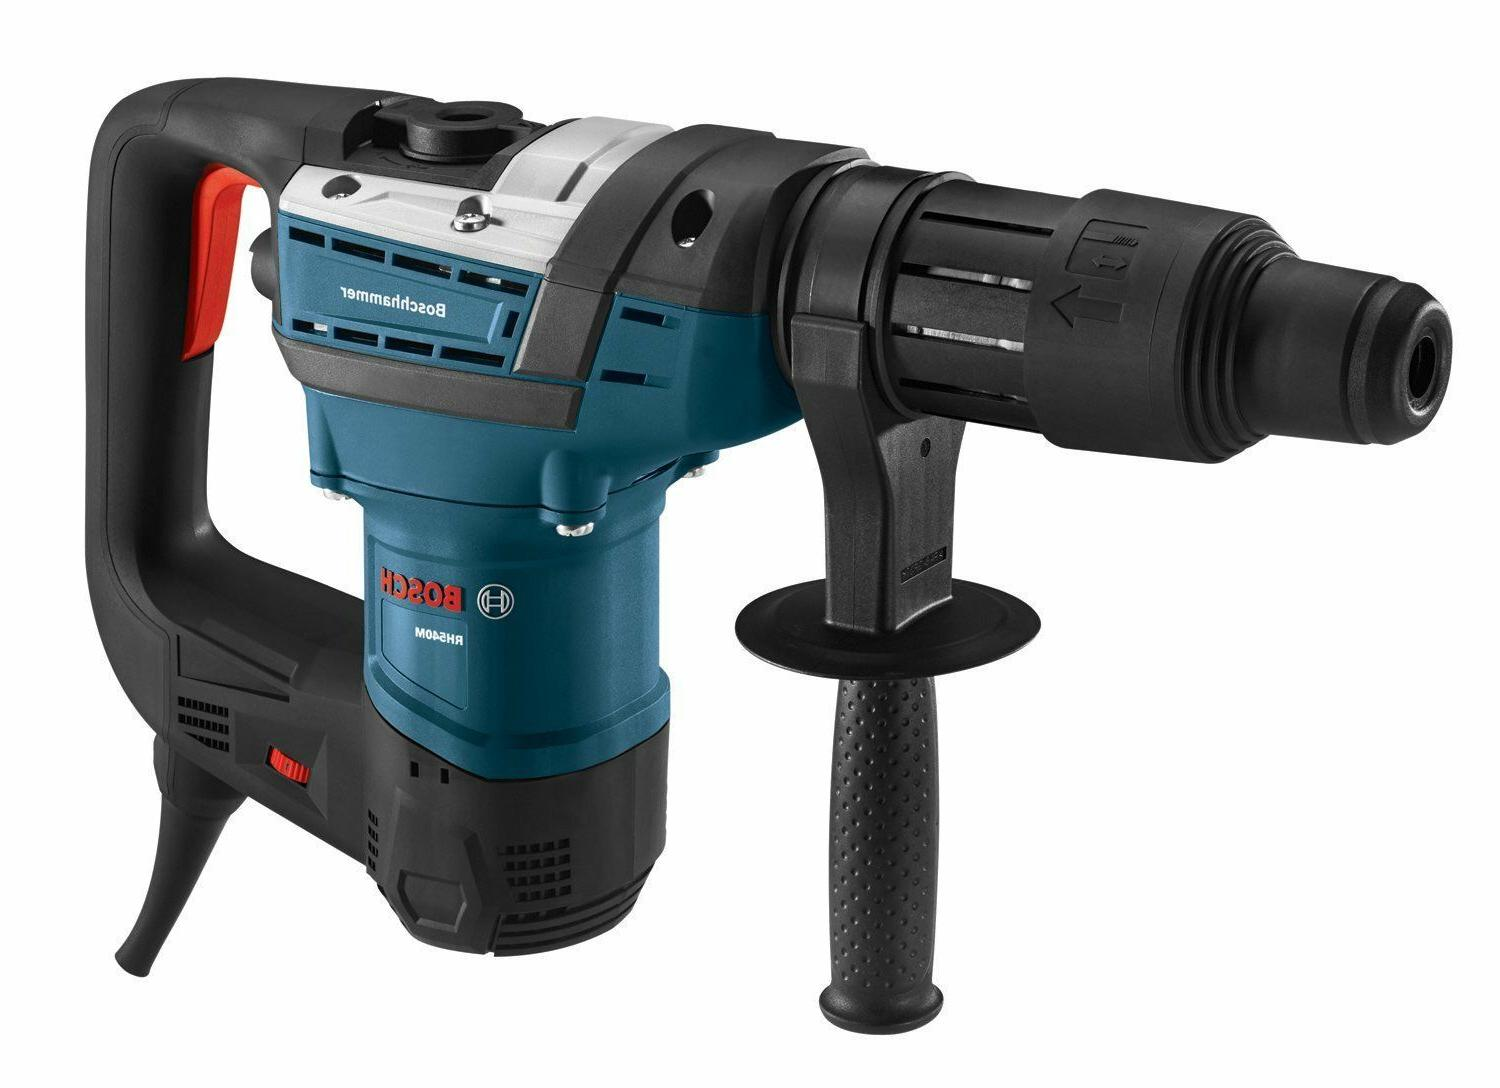 SDS-Max Combination Rotary Hammer 1-9/16-Inch Corded-Electri